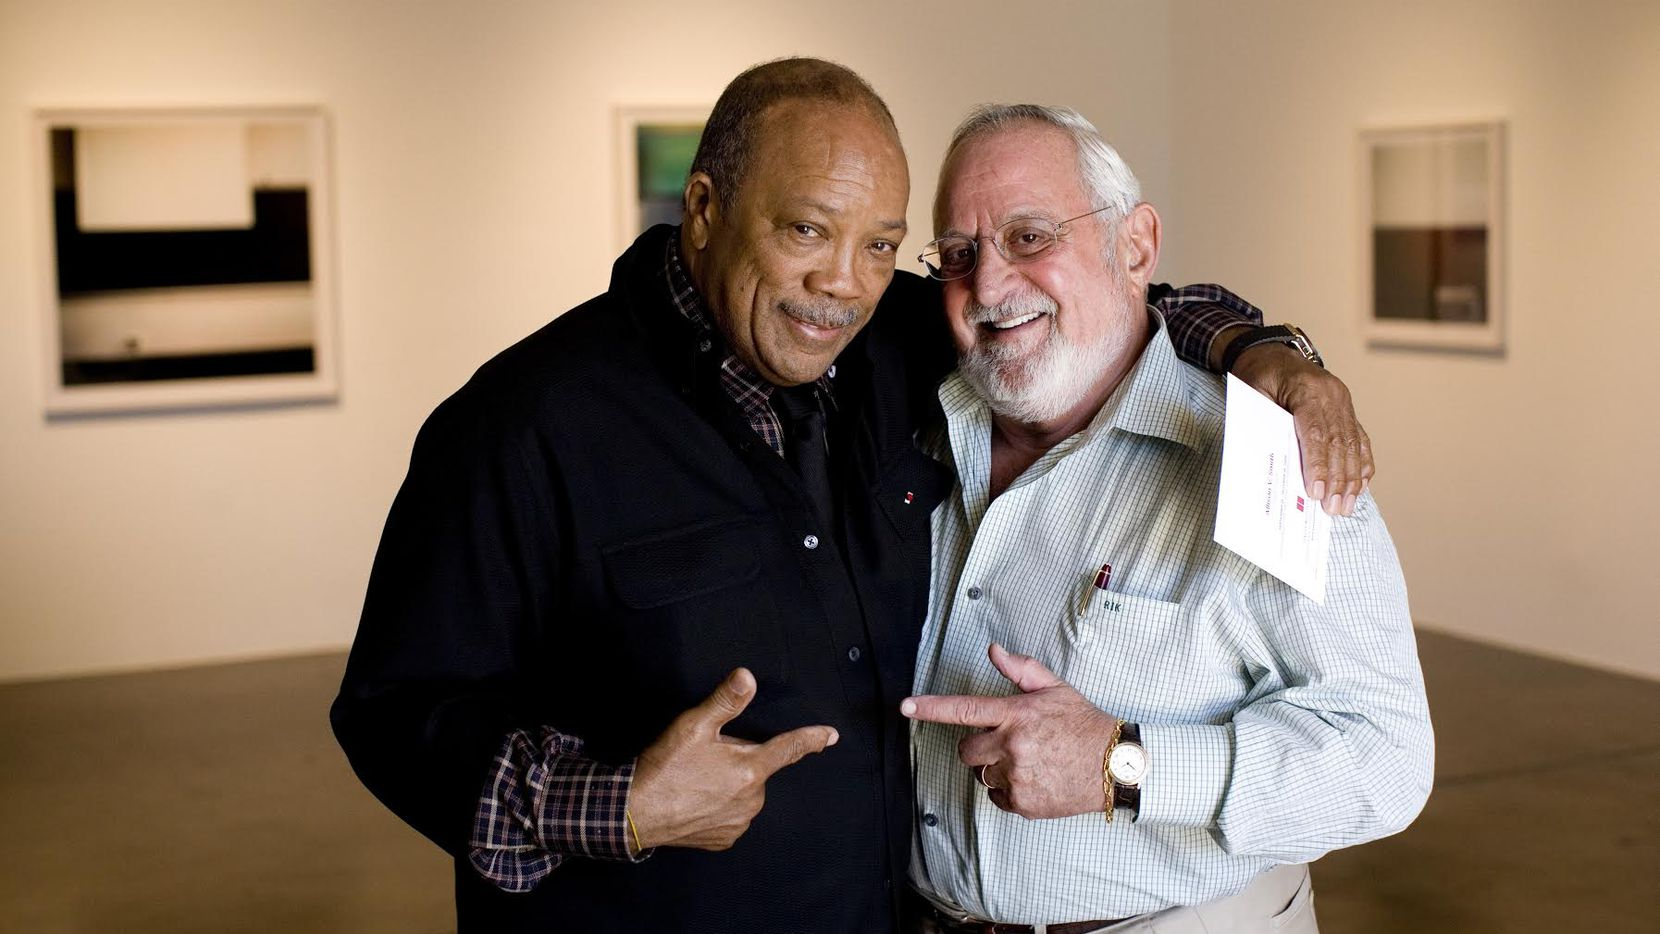 Quincy Jones and Dr. Bob at the Barry Whistler Gallery in early October 2008, when Jones was in Dallas for the Tate Lecture Series at SMU. The pediatrician was on the board of the Quincy Jones Foundation.